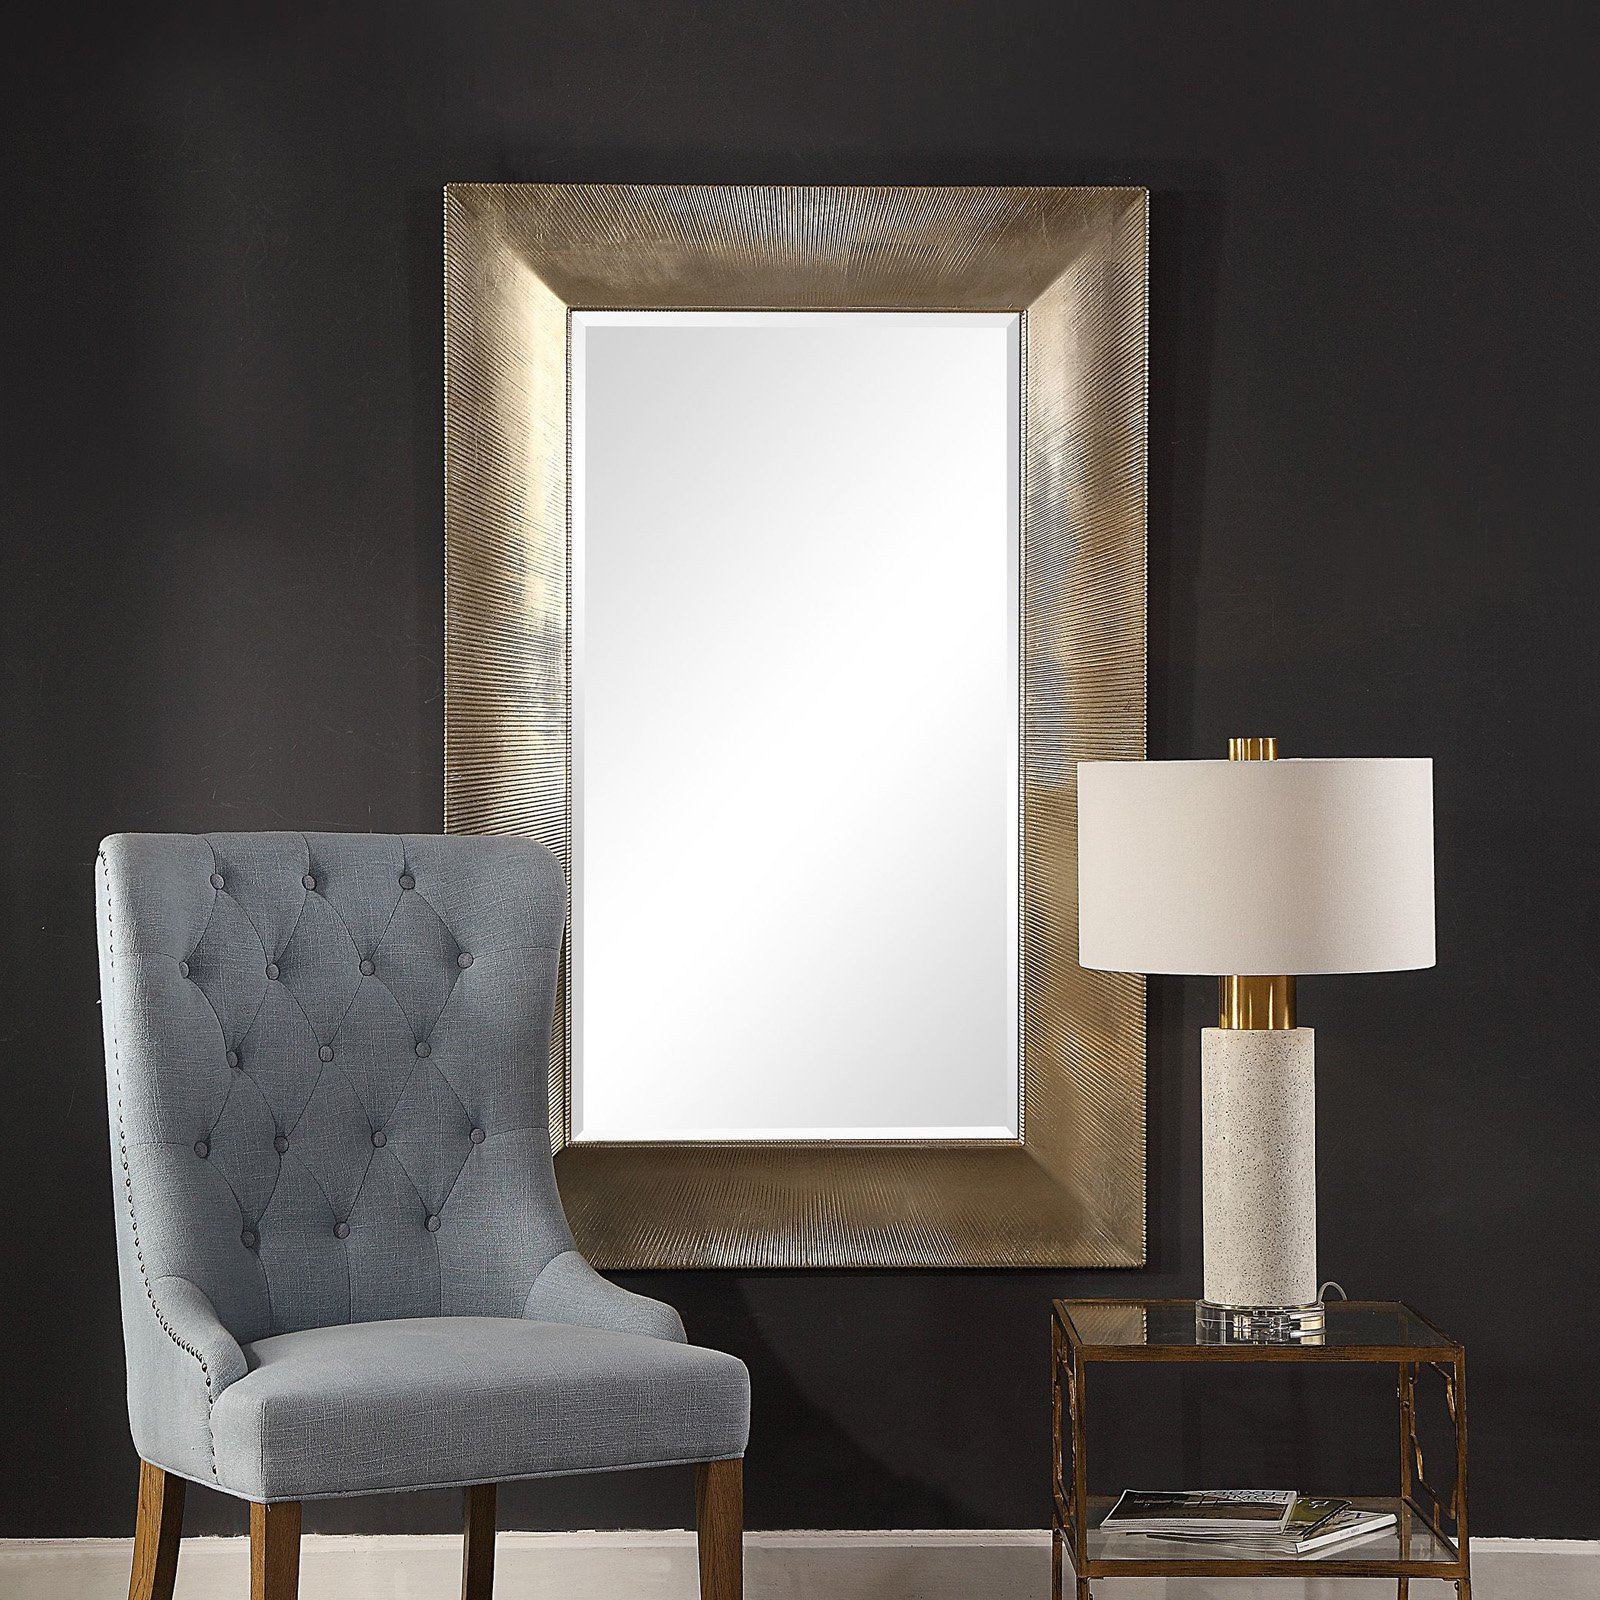 Popular Uttermost Valenton Large Wall Mirror – 39W X 60H In (View 13 of 20)